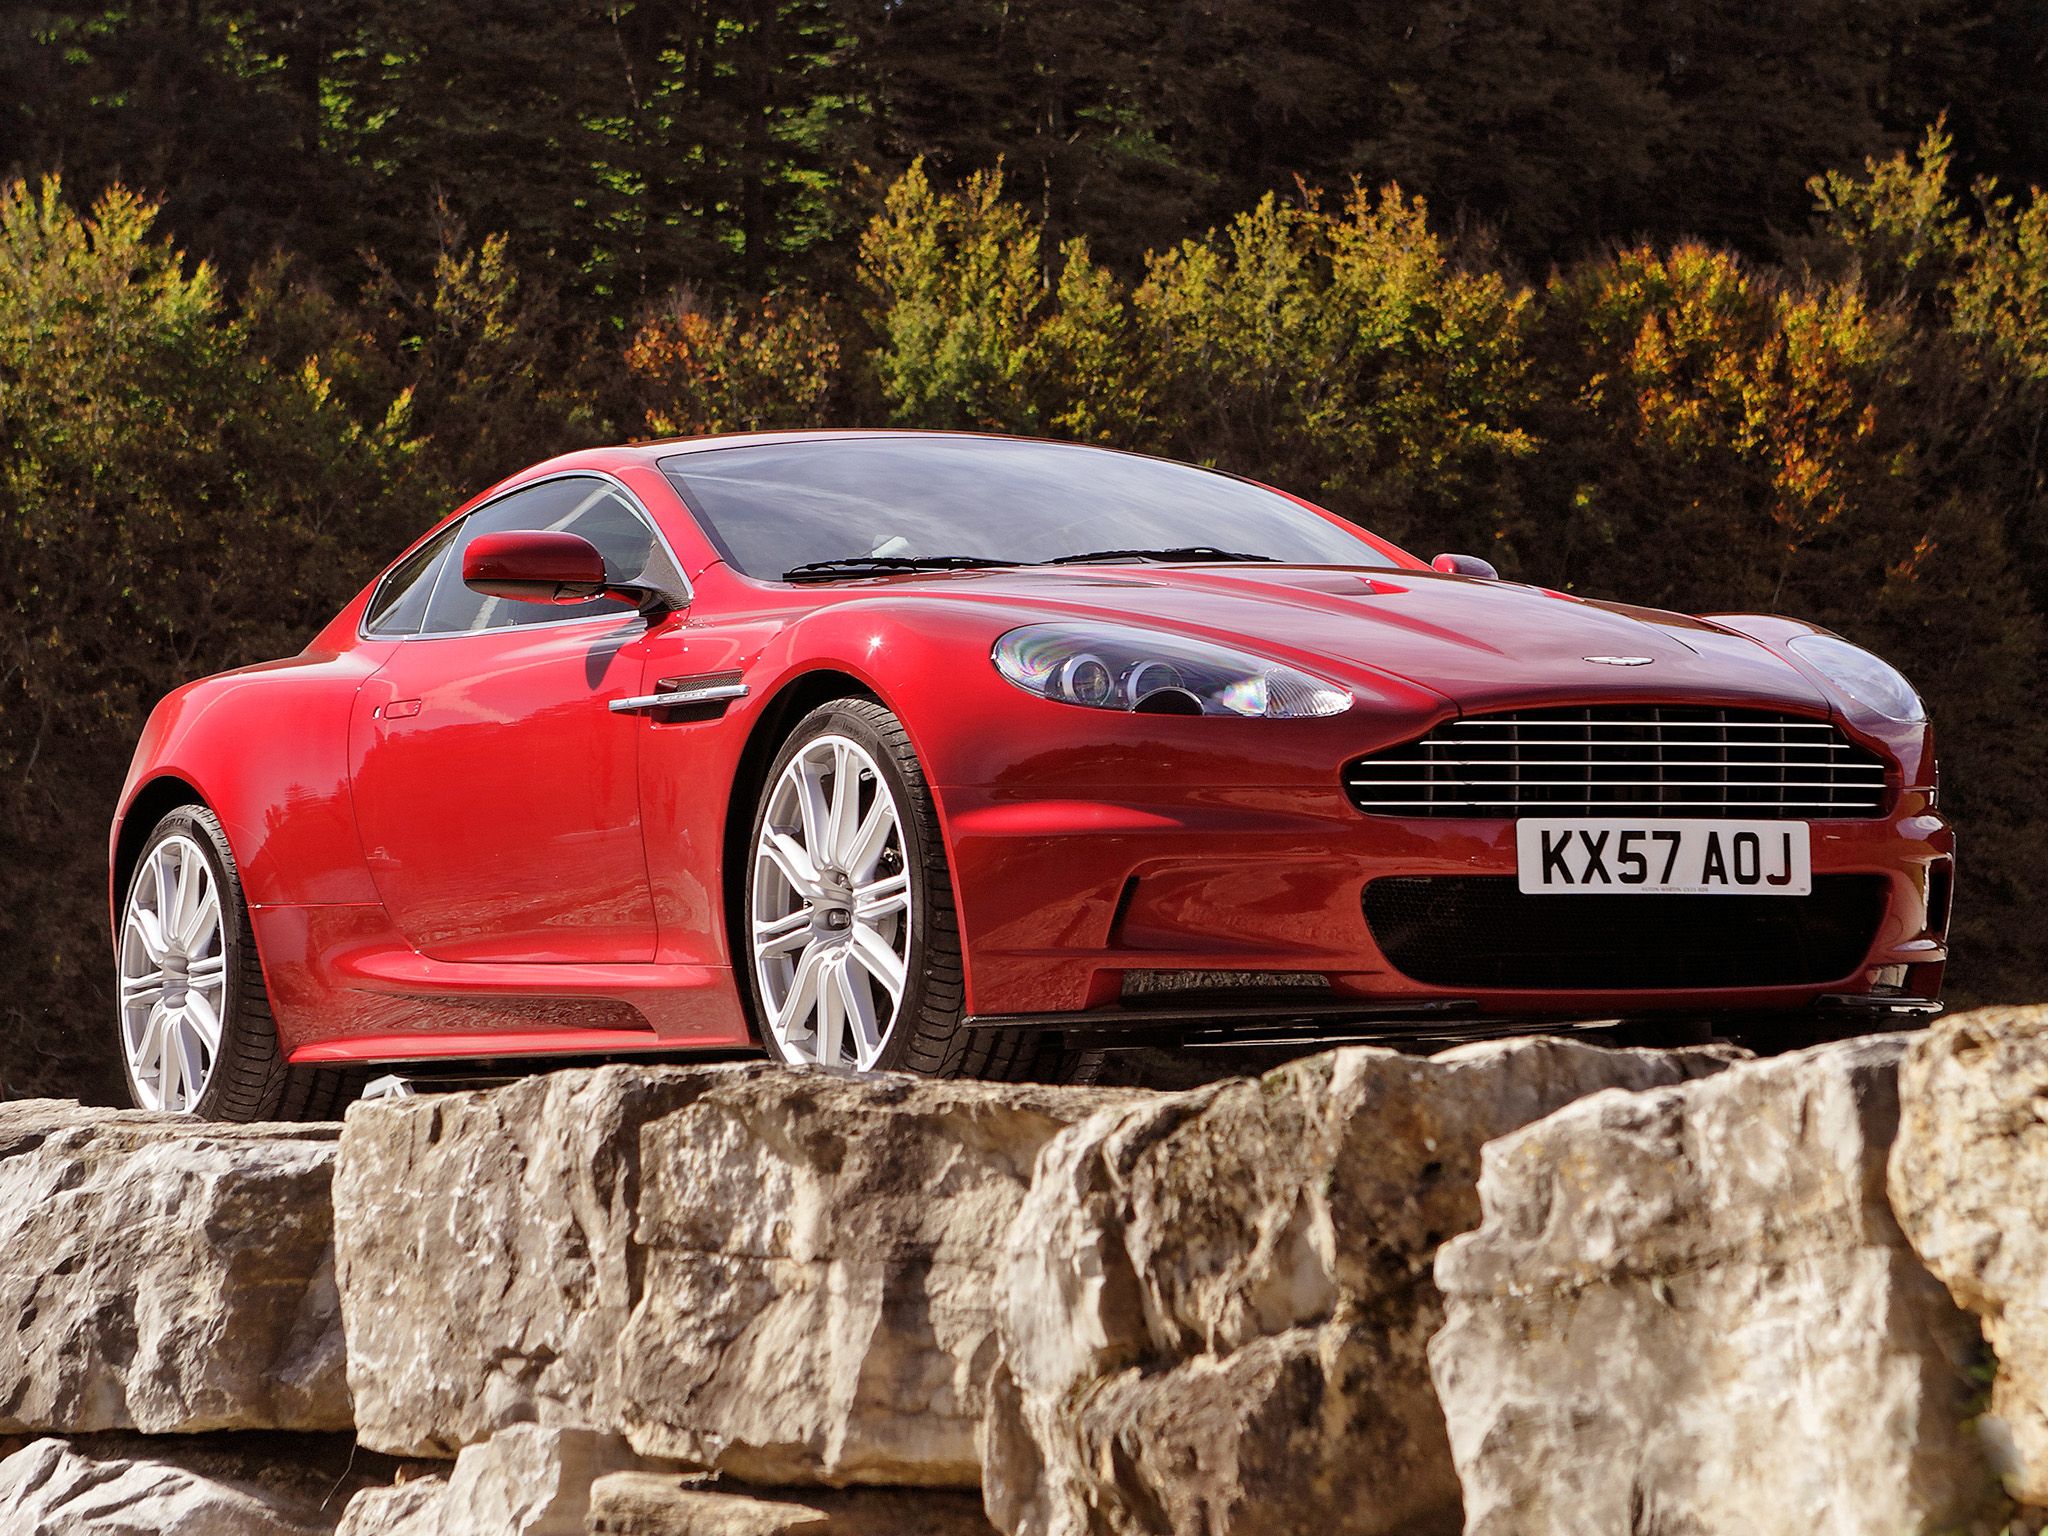 2007 Aston Martin DBS photo - 3